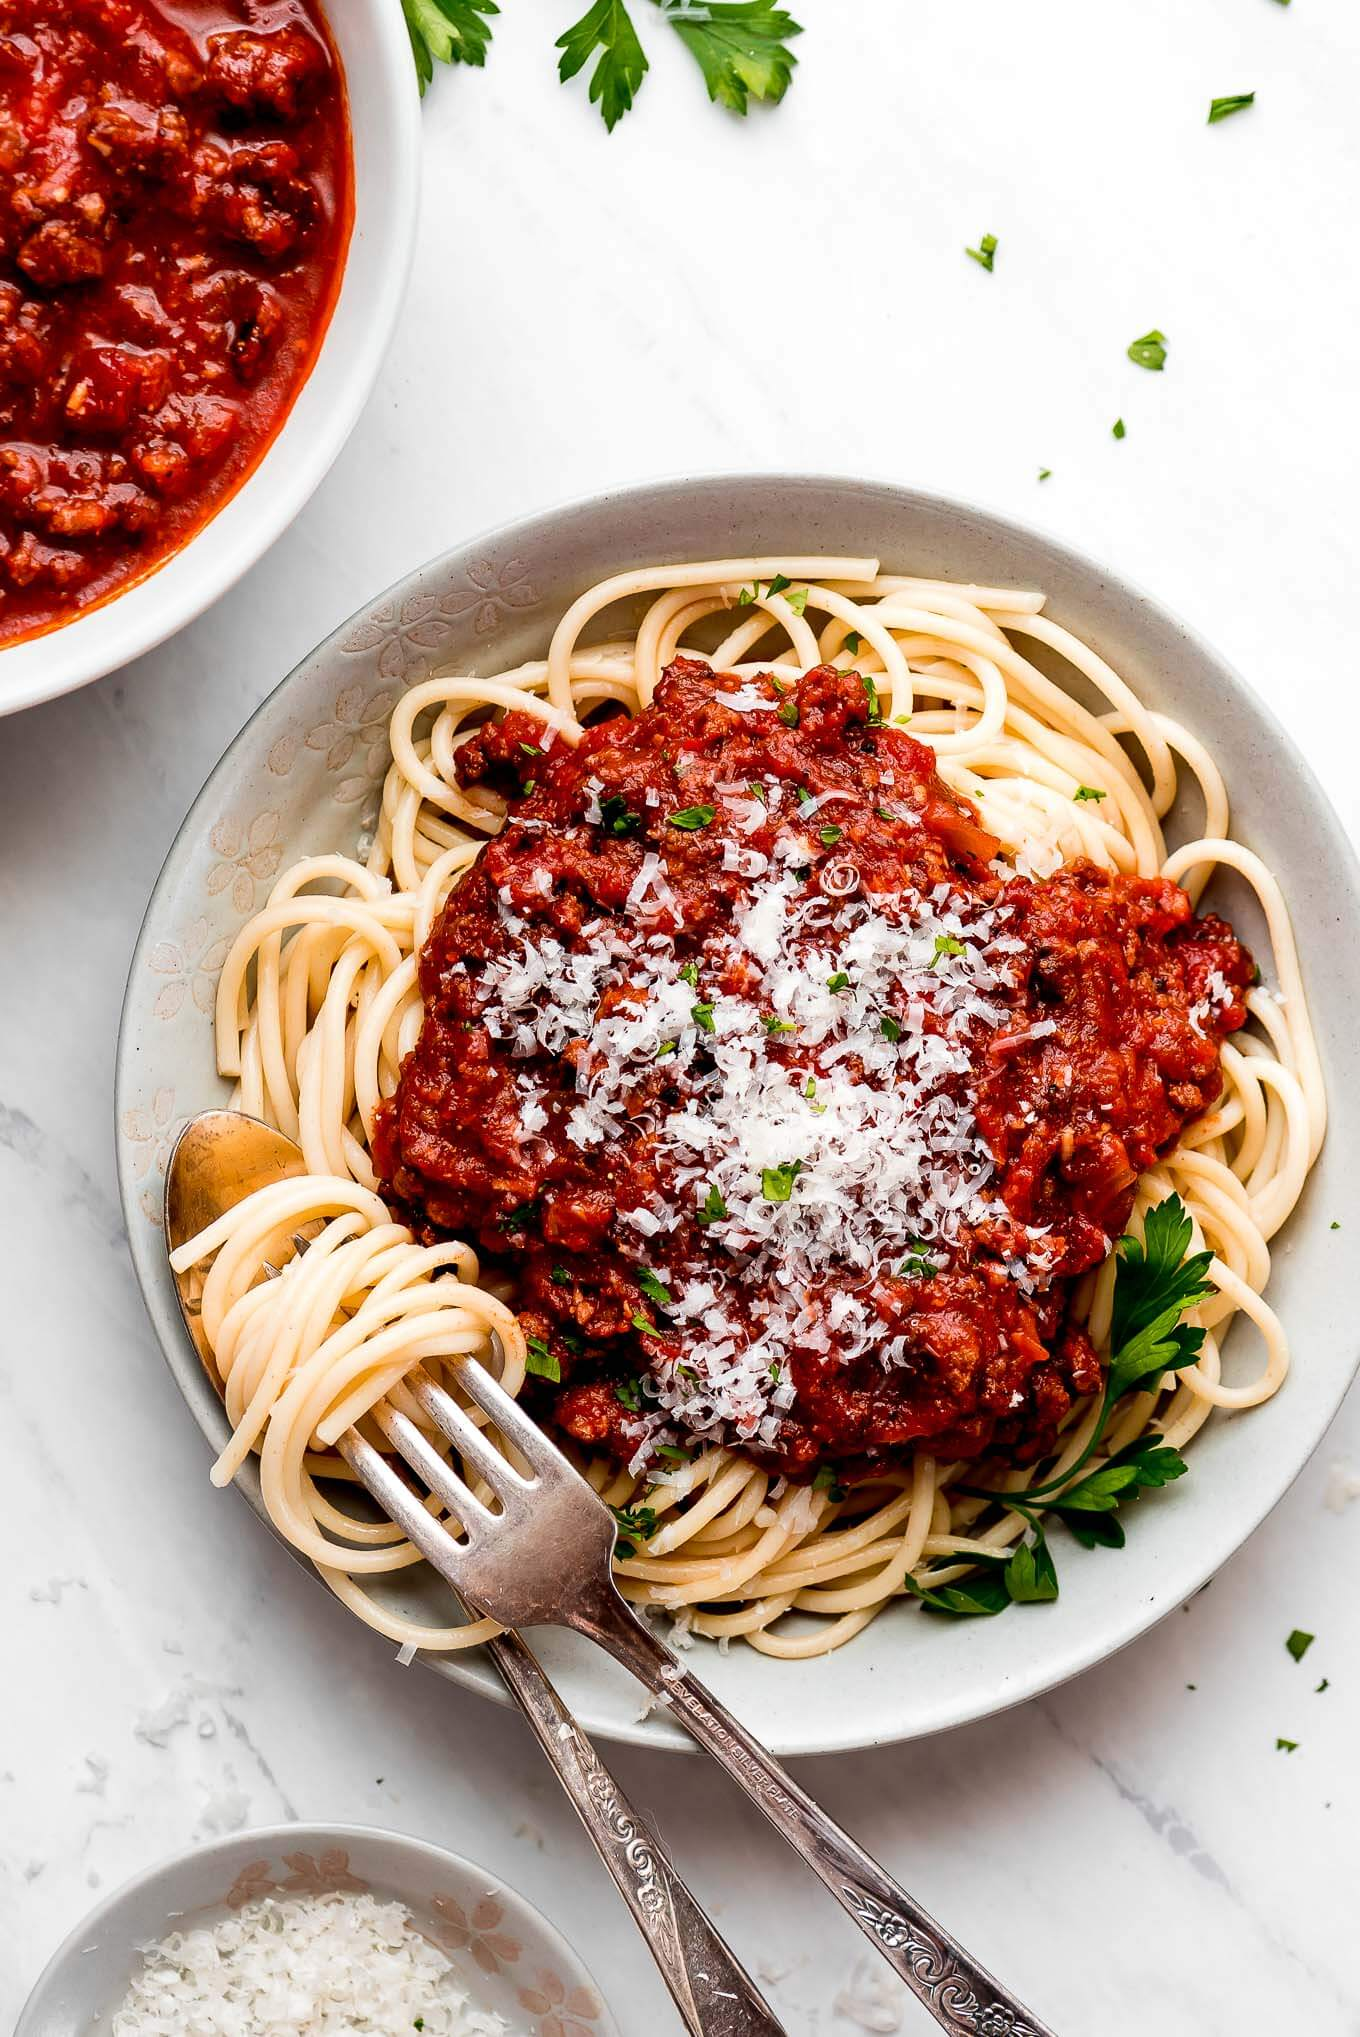 Spaghetti Meat Sauce on top of spaghetti noodles in a bowl with noodles twisted around a fork.